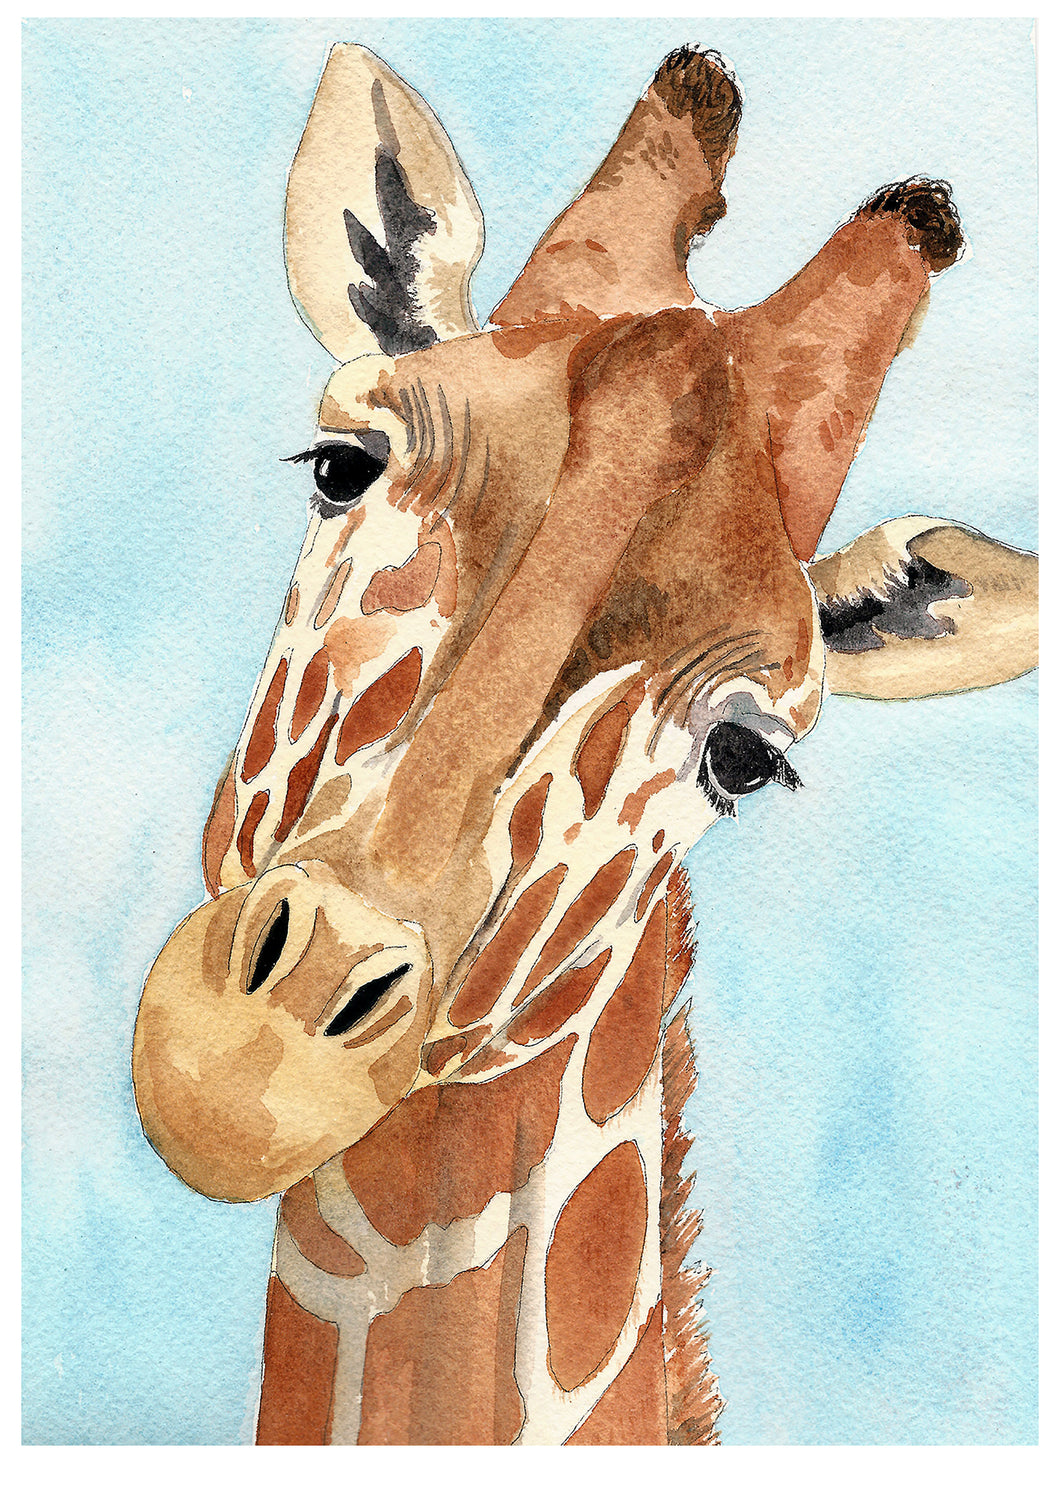 Giraffe art print, kids safari wall art, wall art above crib, nursery safari decor, safari wall art kids, safari kids decor, above crib art